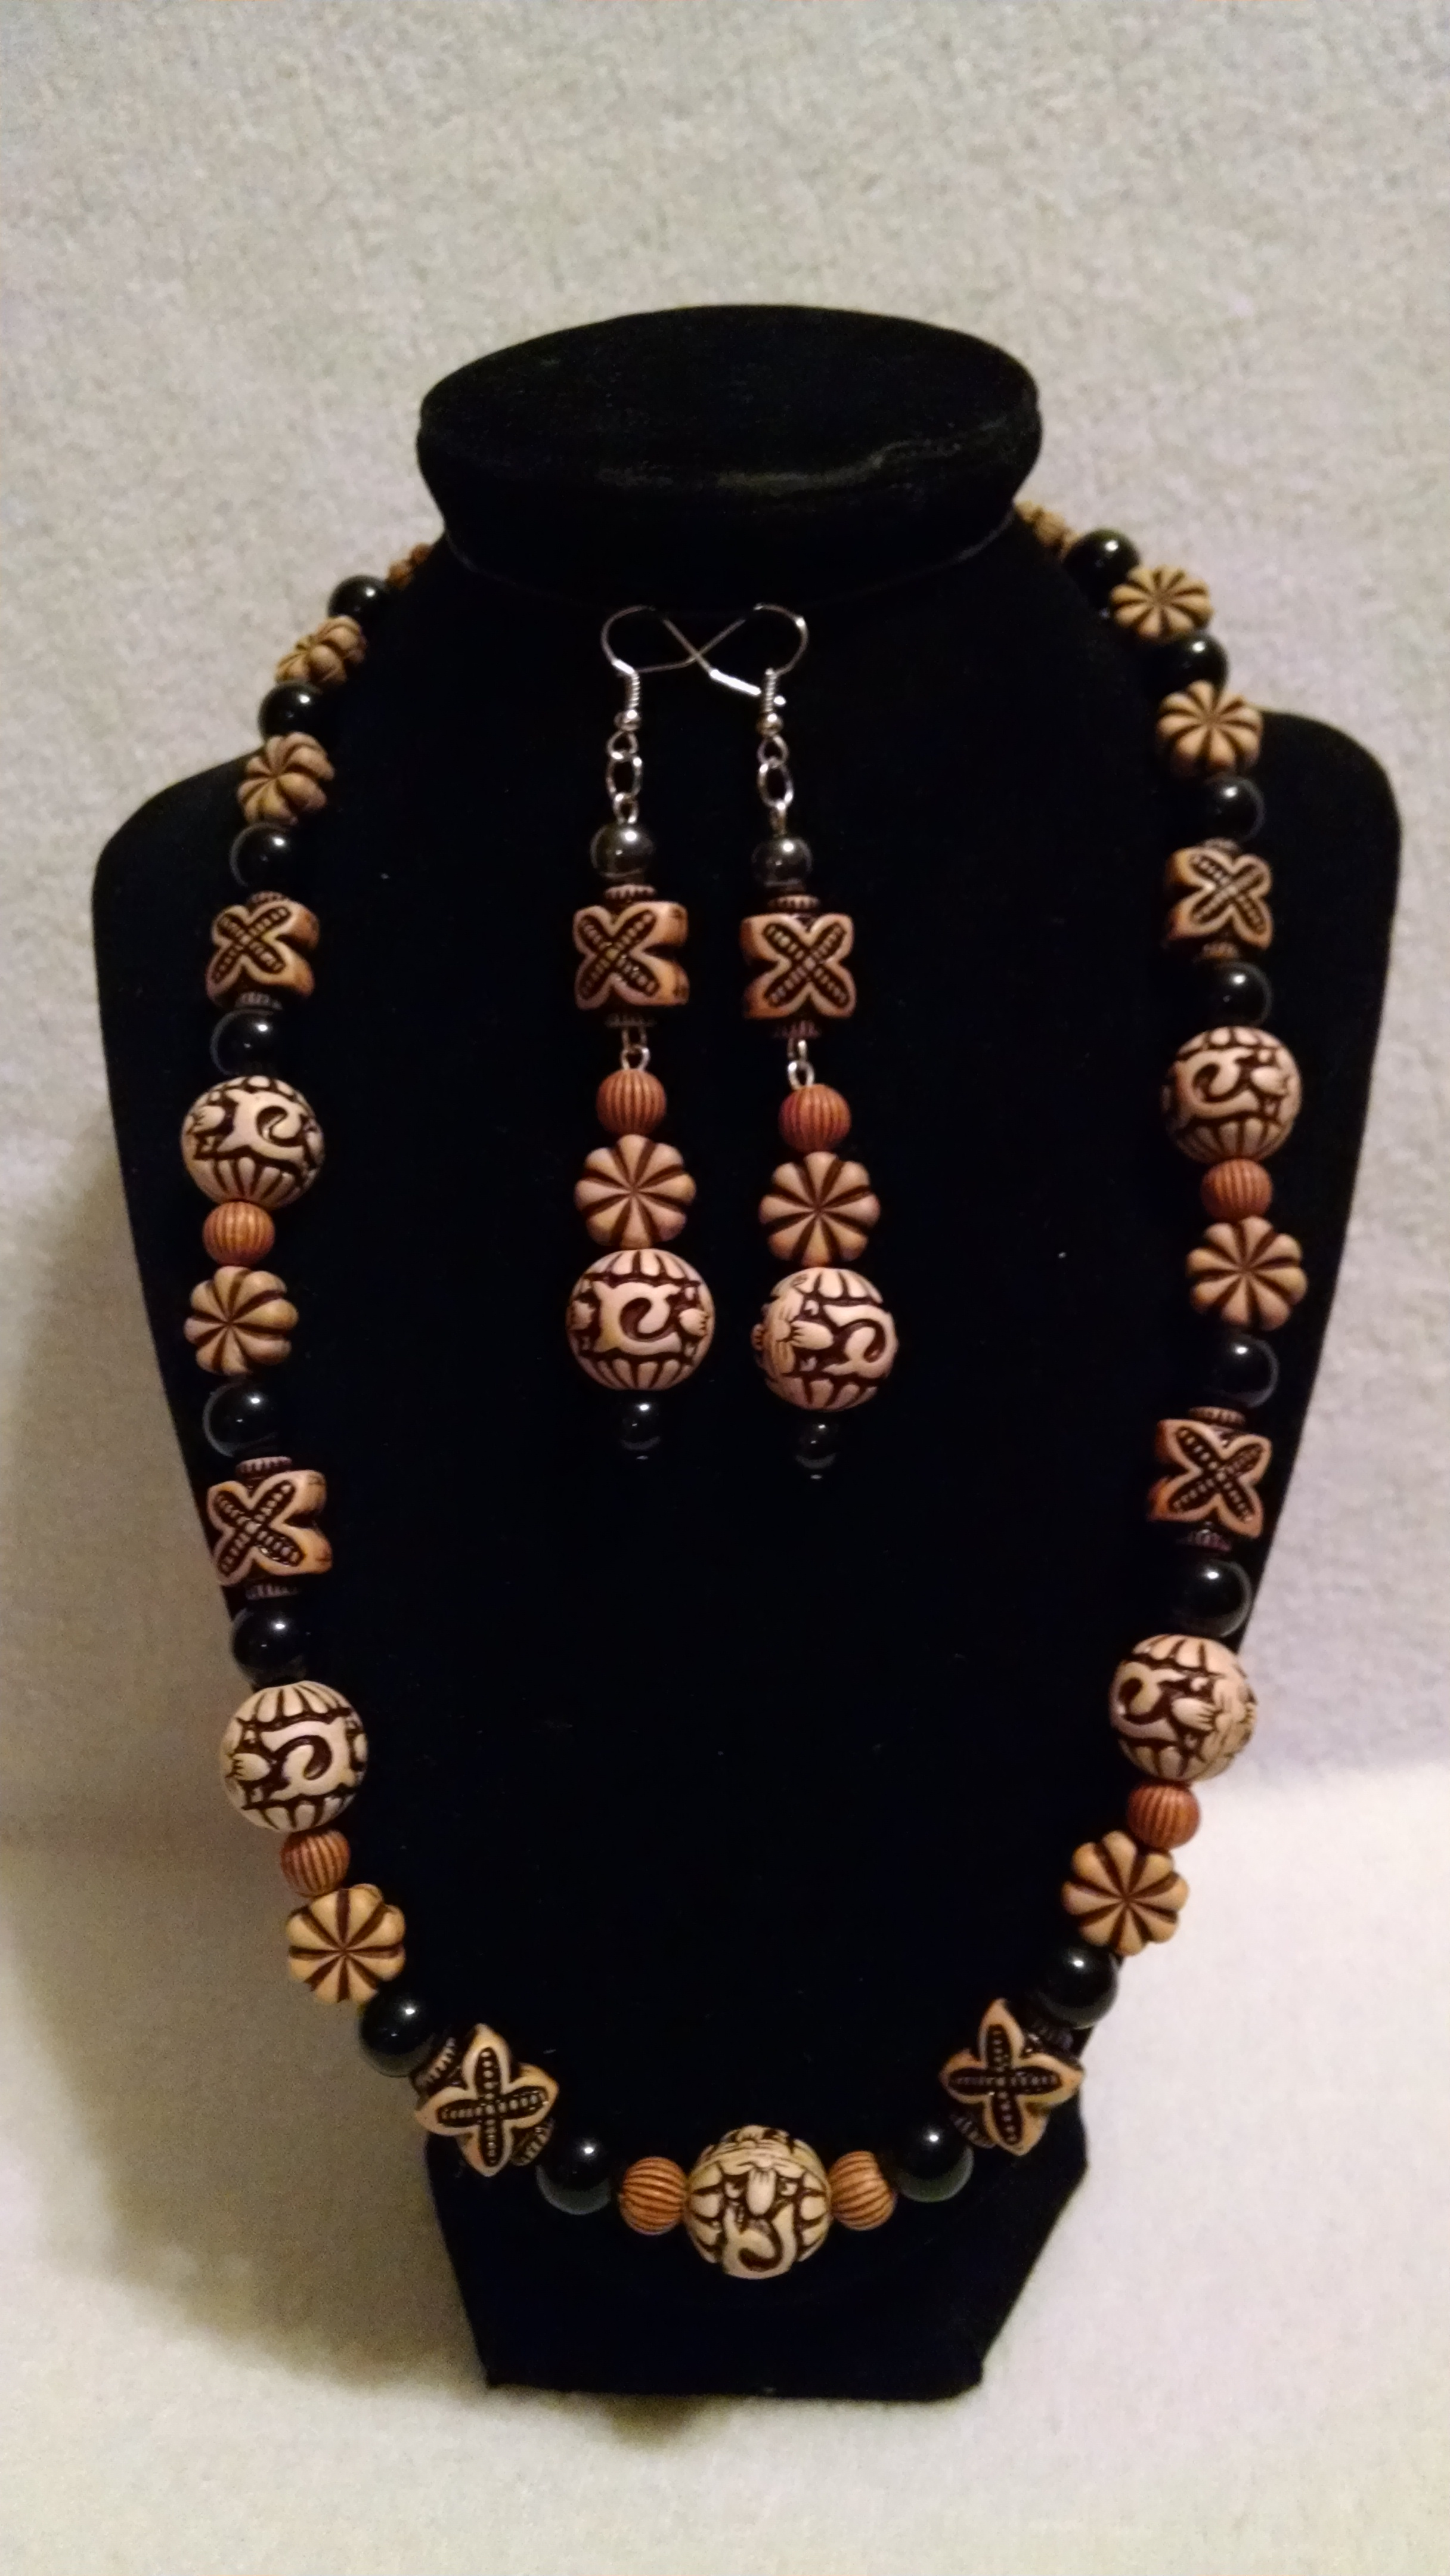 Customized Necklace And Earrings